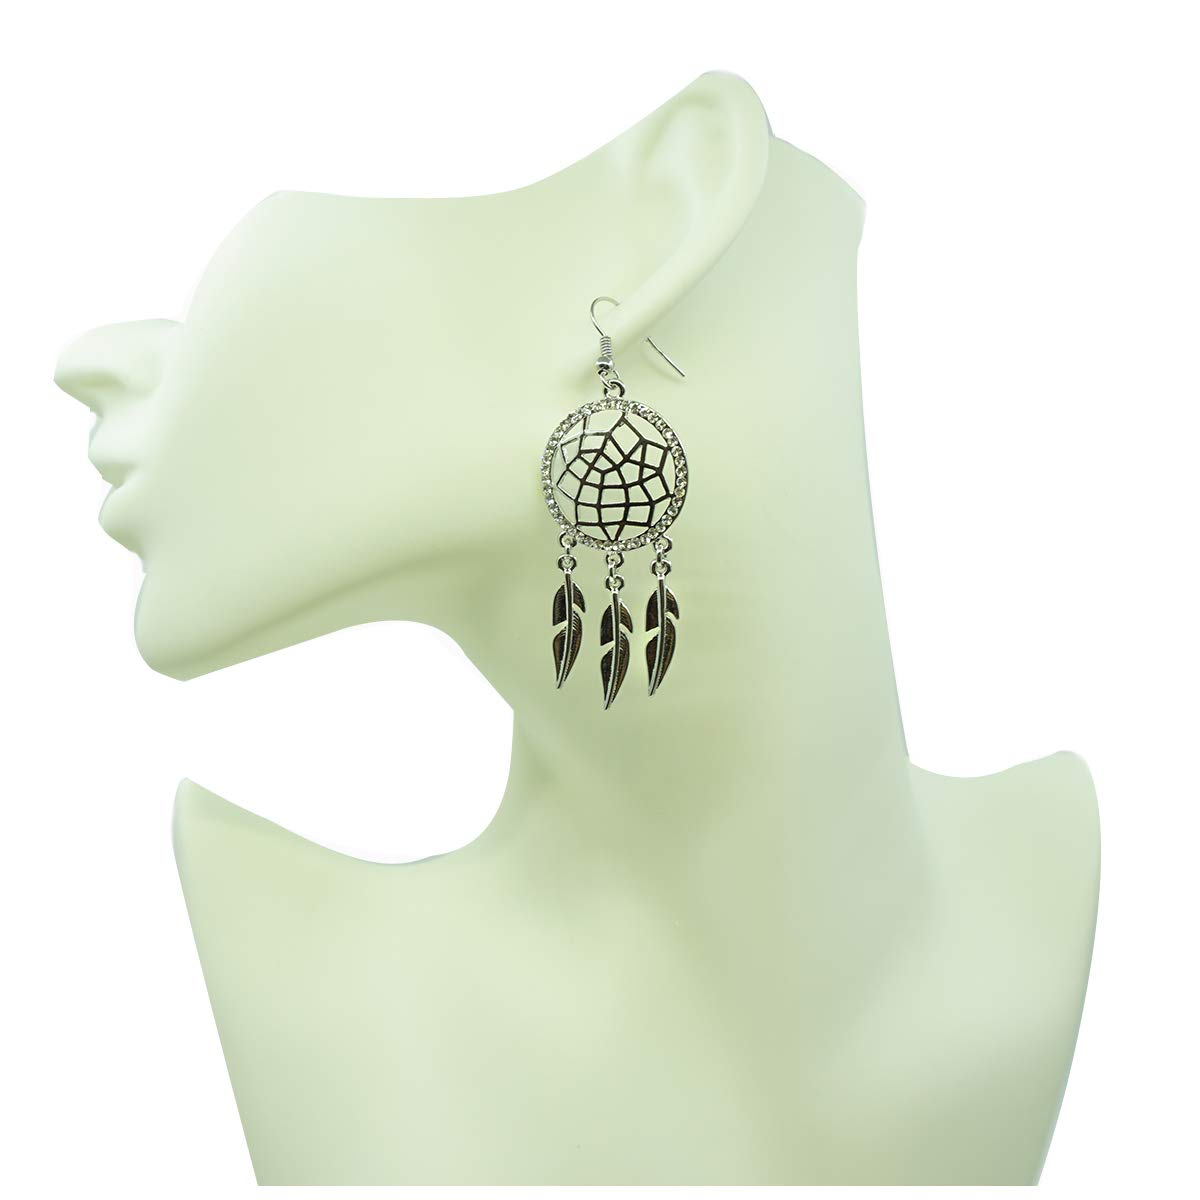 Dangle Earring for Women,Dream Catcher Drop Earring Rose Gold and Silver Earring Hypoallergenic Earring with CZ Crystal